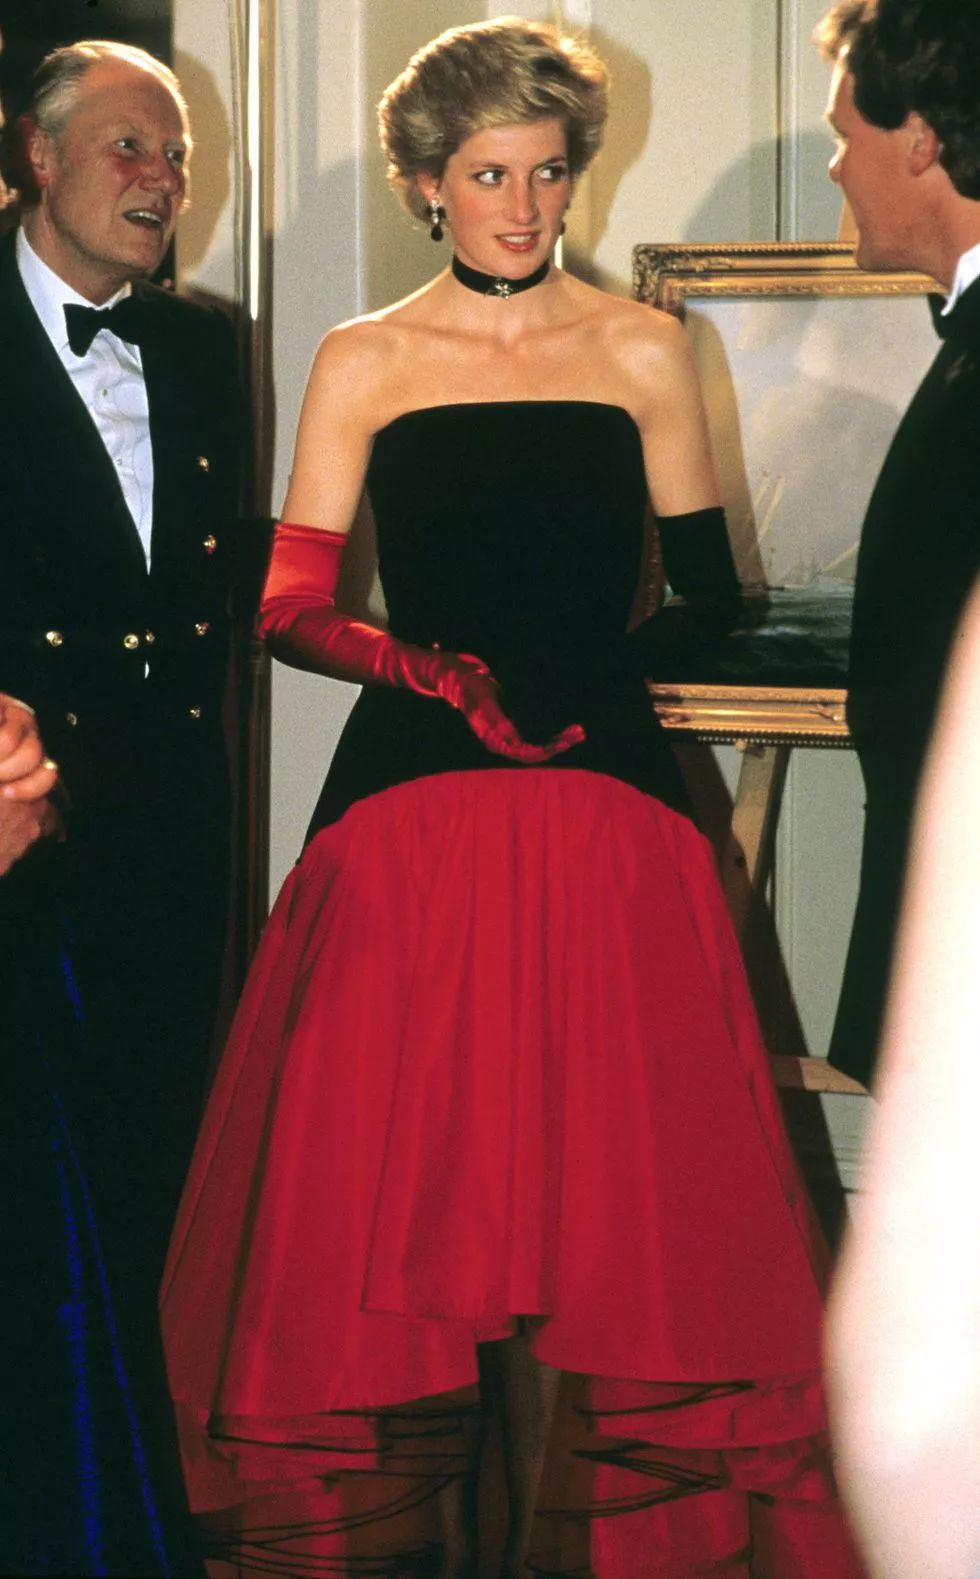 Diana attended the America's Cup Ball at the Grosvenor House hotel in London in September 1986